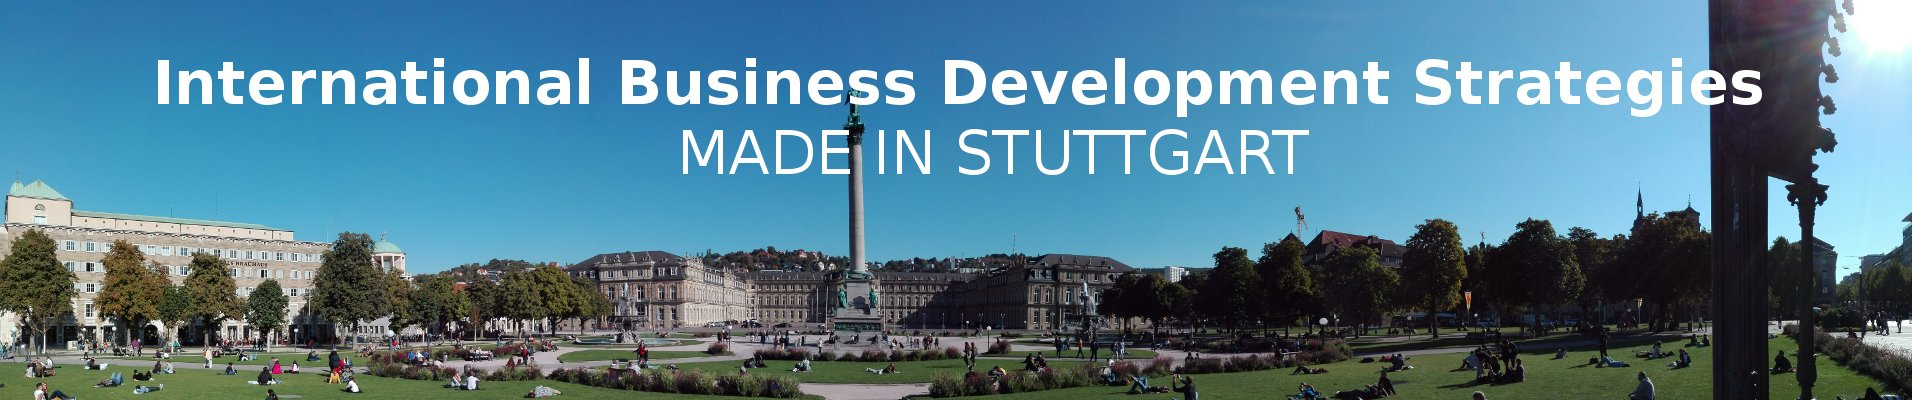 Nebra_Consulting_International_Business_Development_Strategy_Design_Made_In_Stuttgart_Germany.jpg